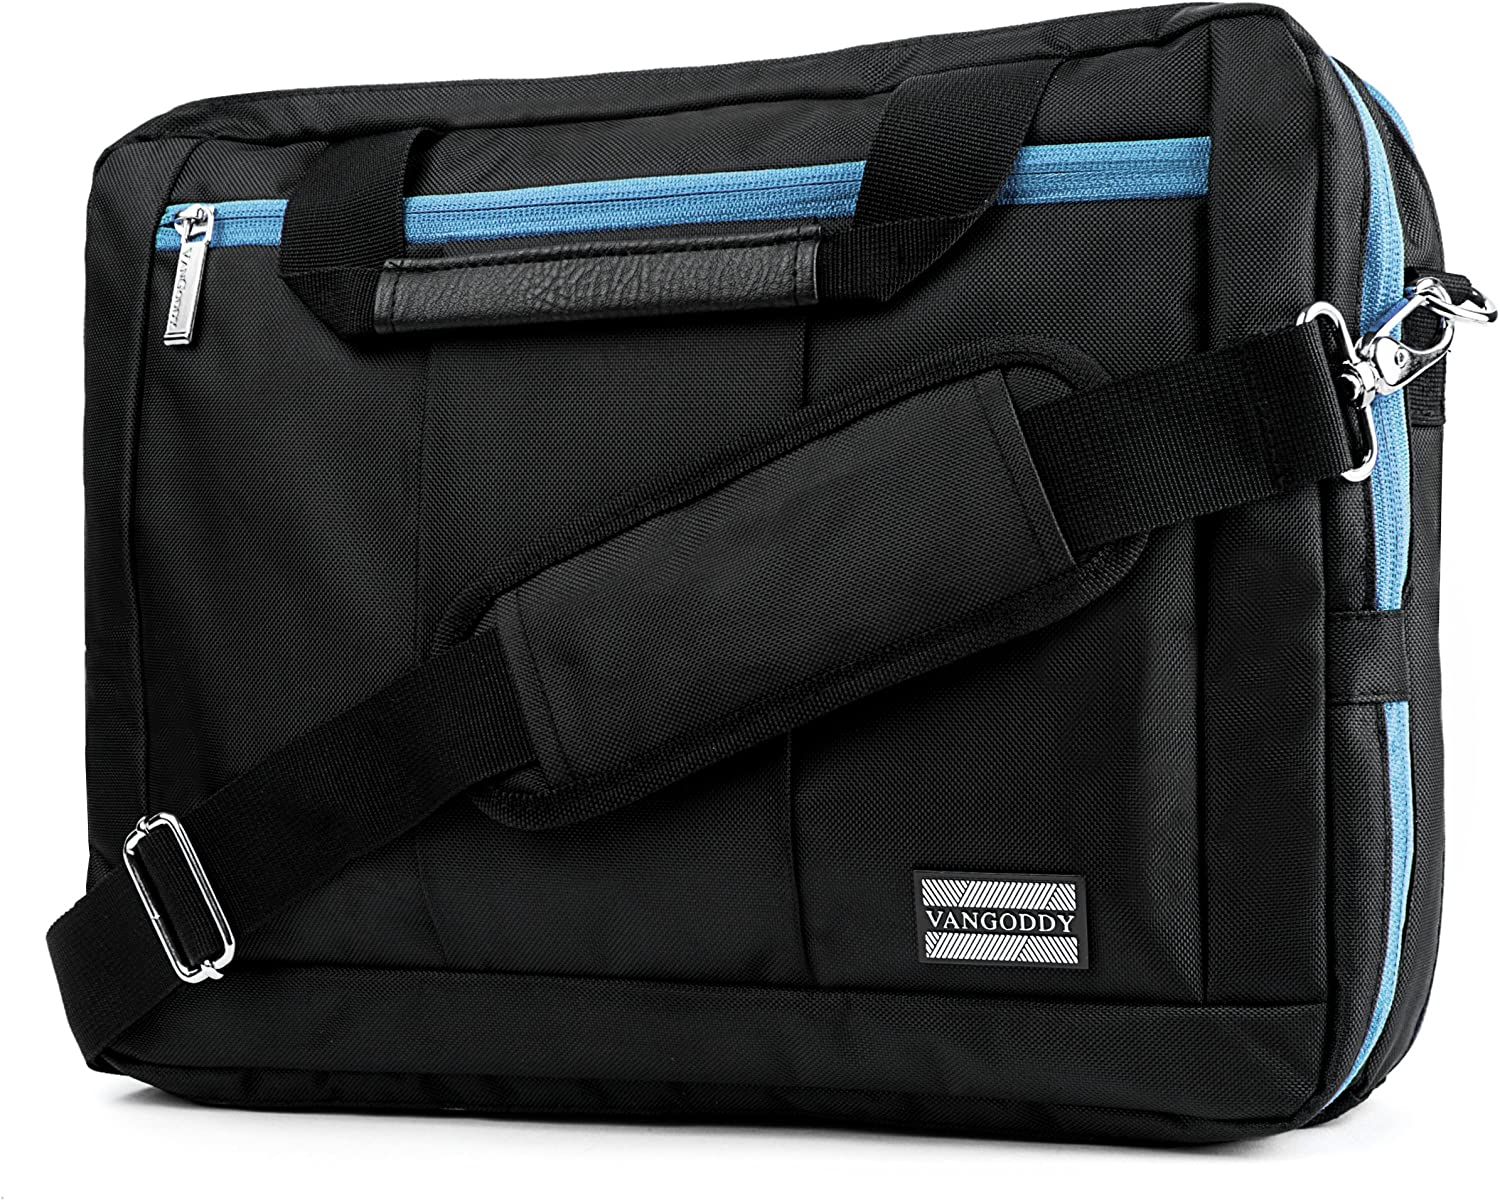 "Blue Convertible Laptop Messenger Bag for Lenovo Flex, ThinkPad, IdeaPad, Legion, Yoga 14"" to 15.6 inch"